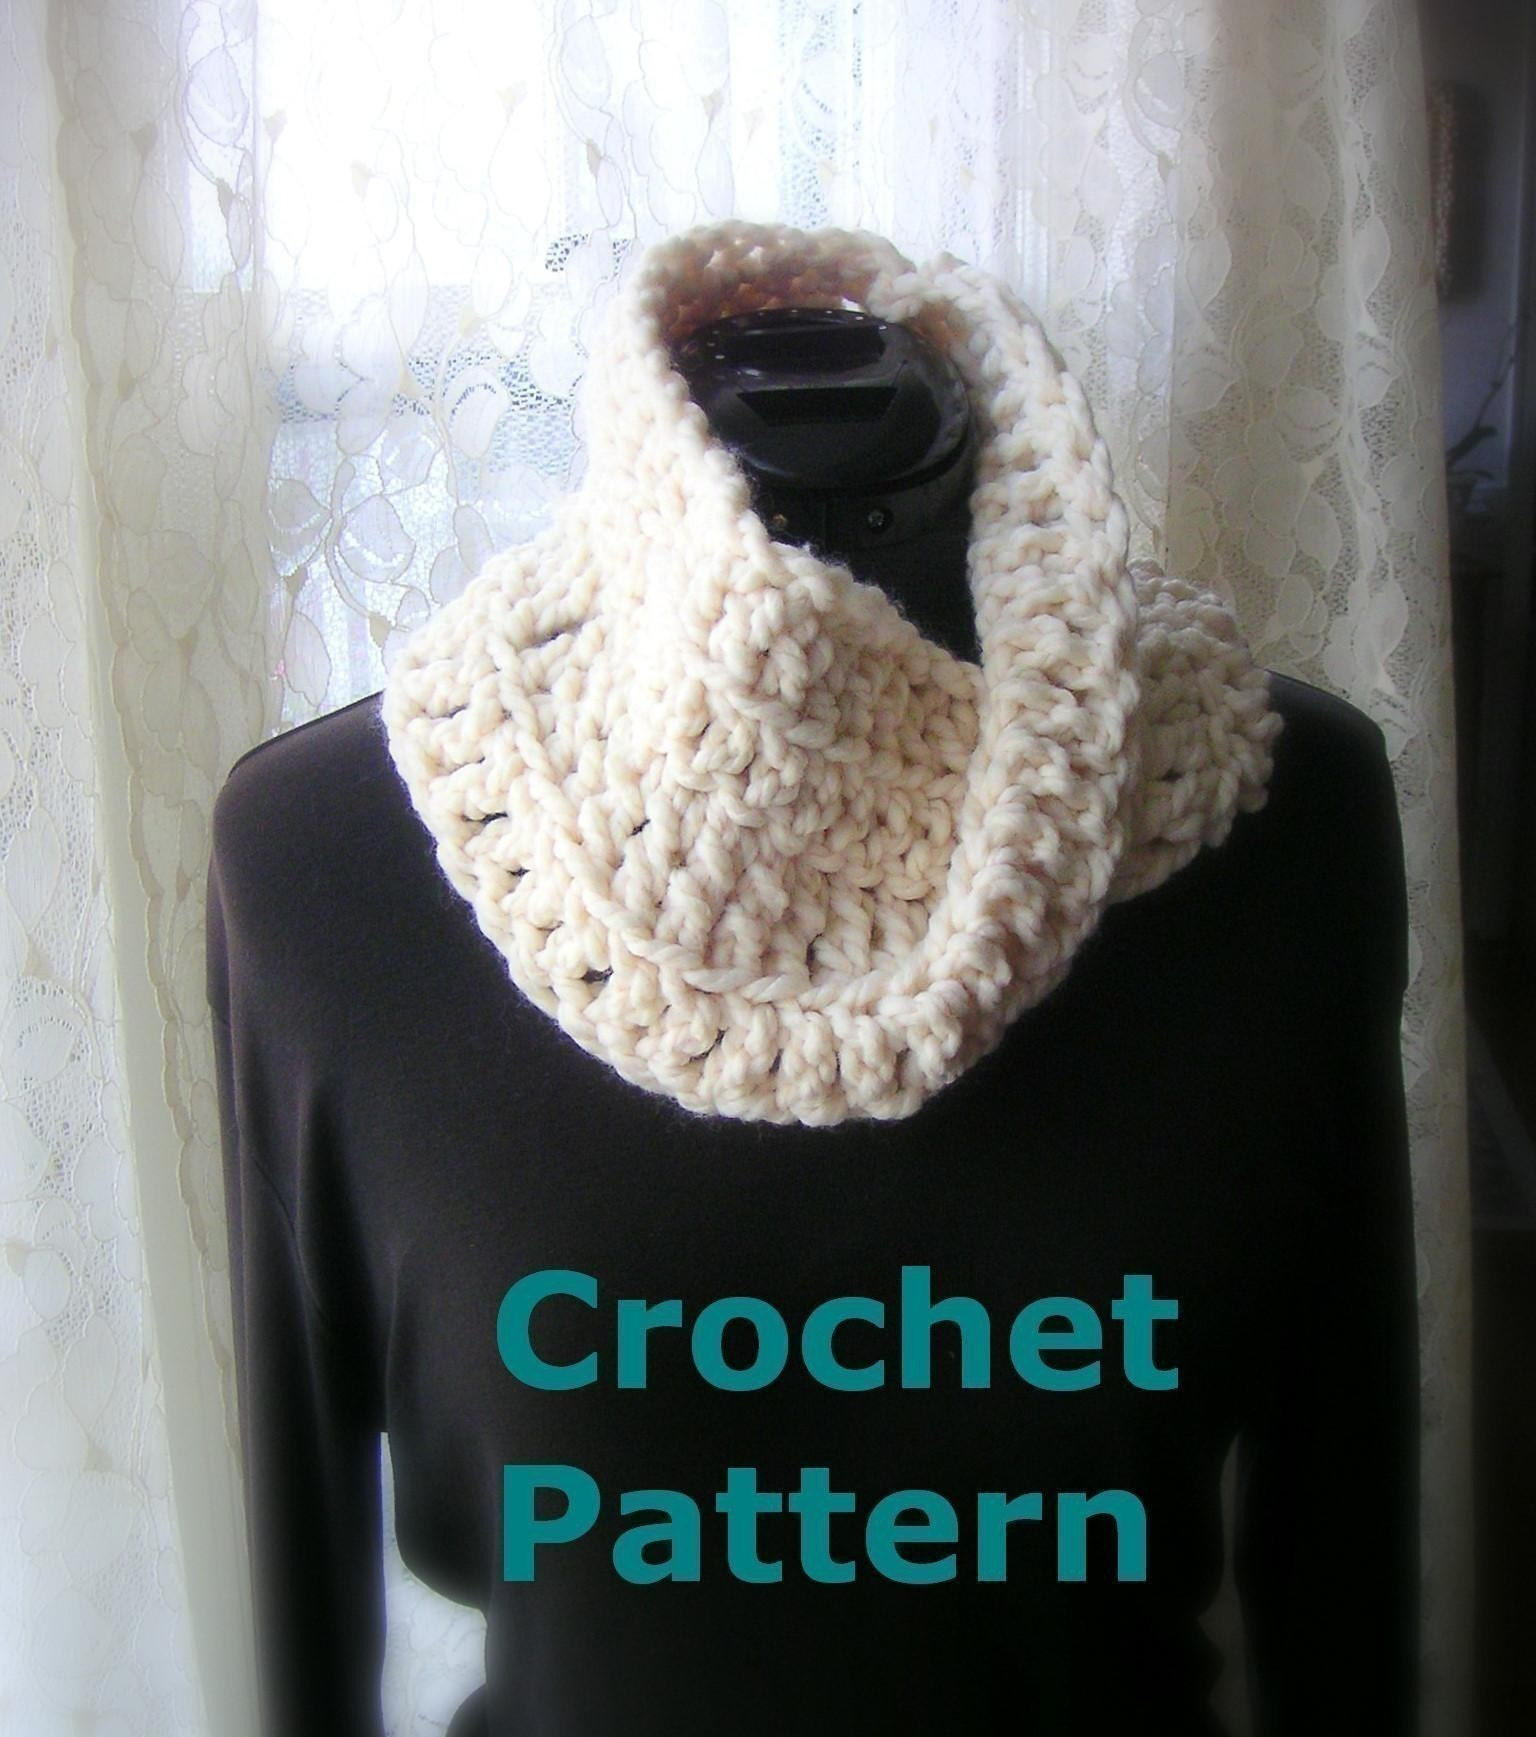 Learn Crochet : LEARN TO CROCHET A SCARF - Crochet - Learn How to Crochet